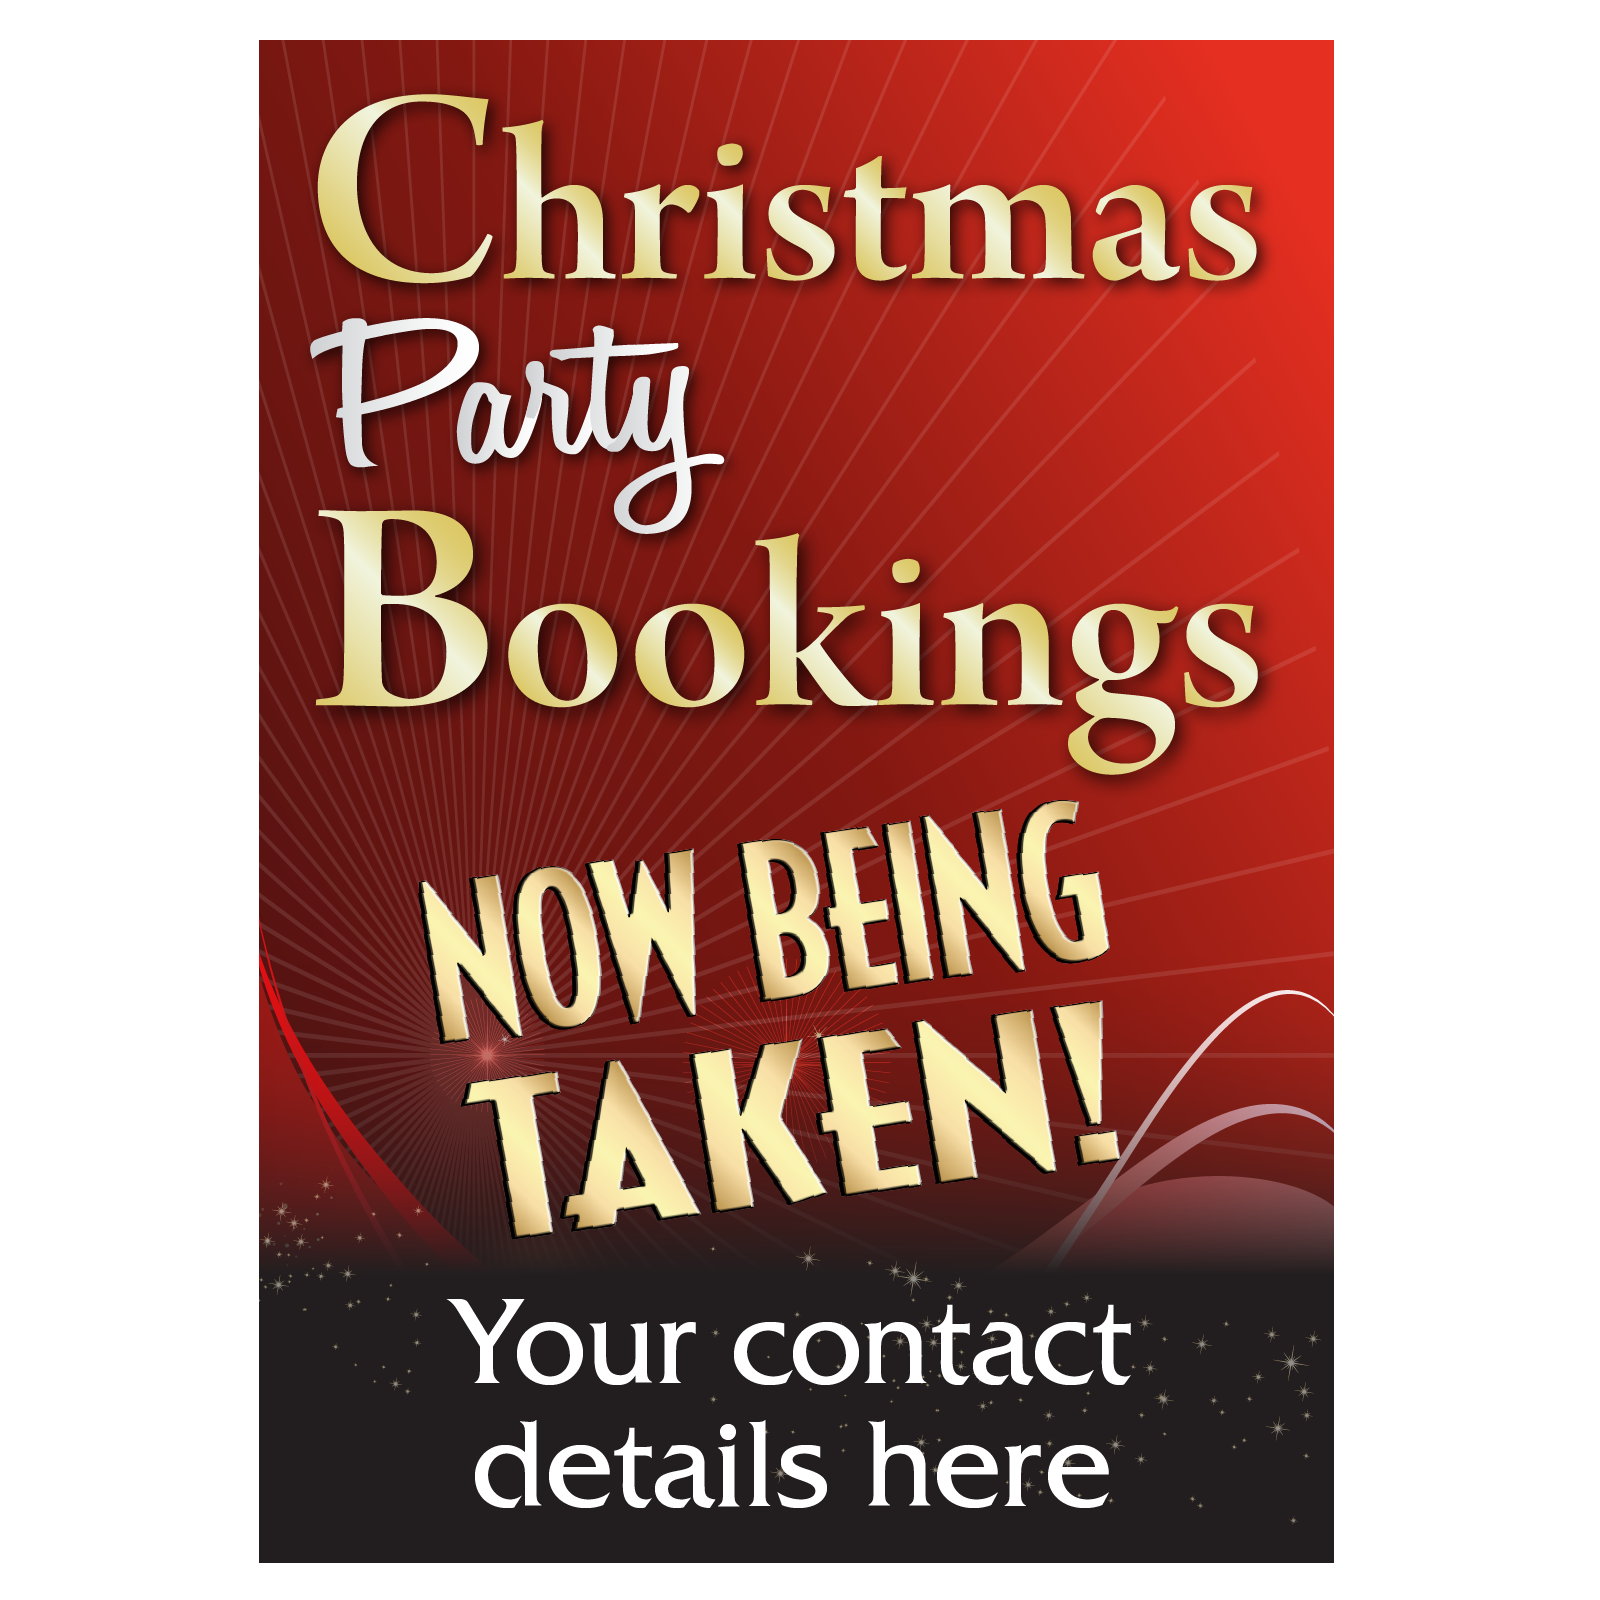 Taking Bookings Now Christmas Poster